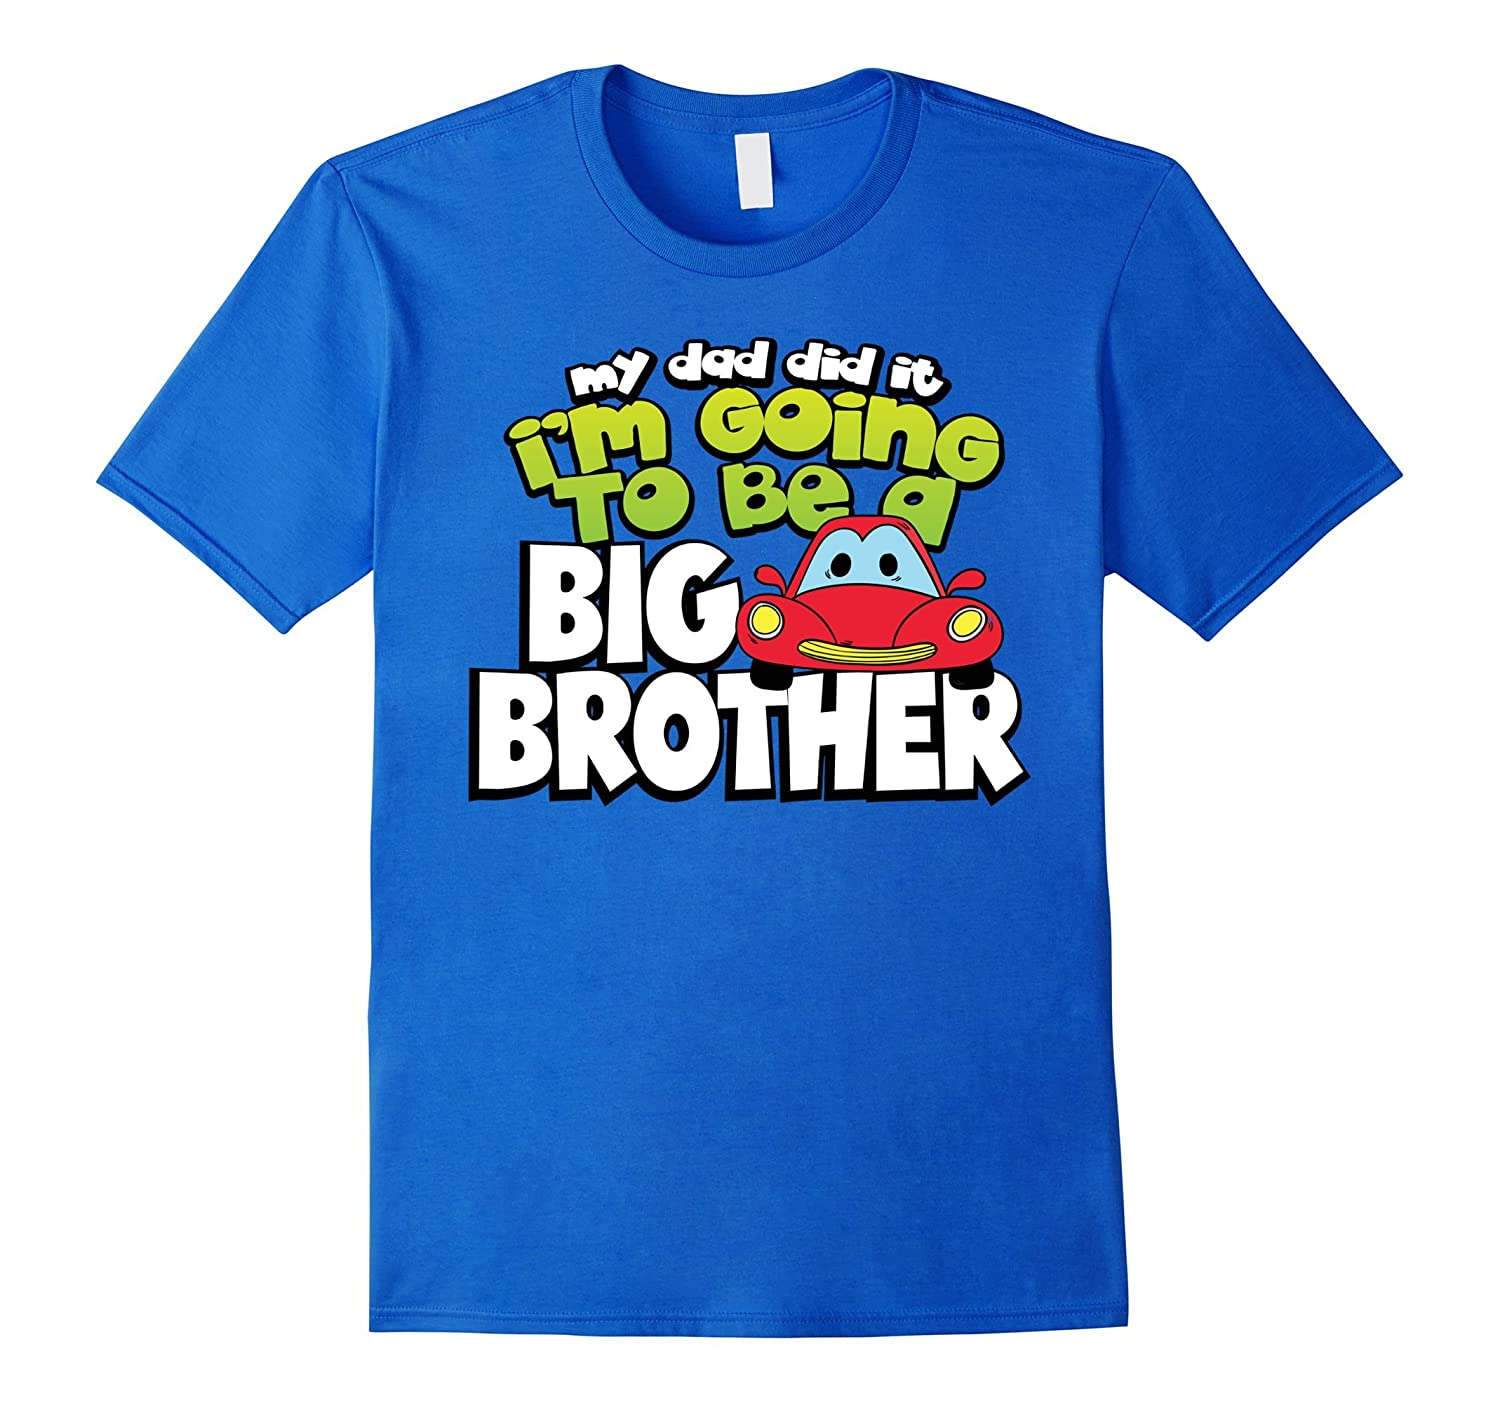 I'm Going To Be a Big Brother Shirt – My Dad Did It Tee